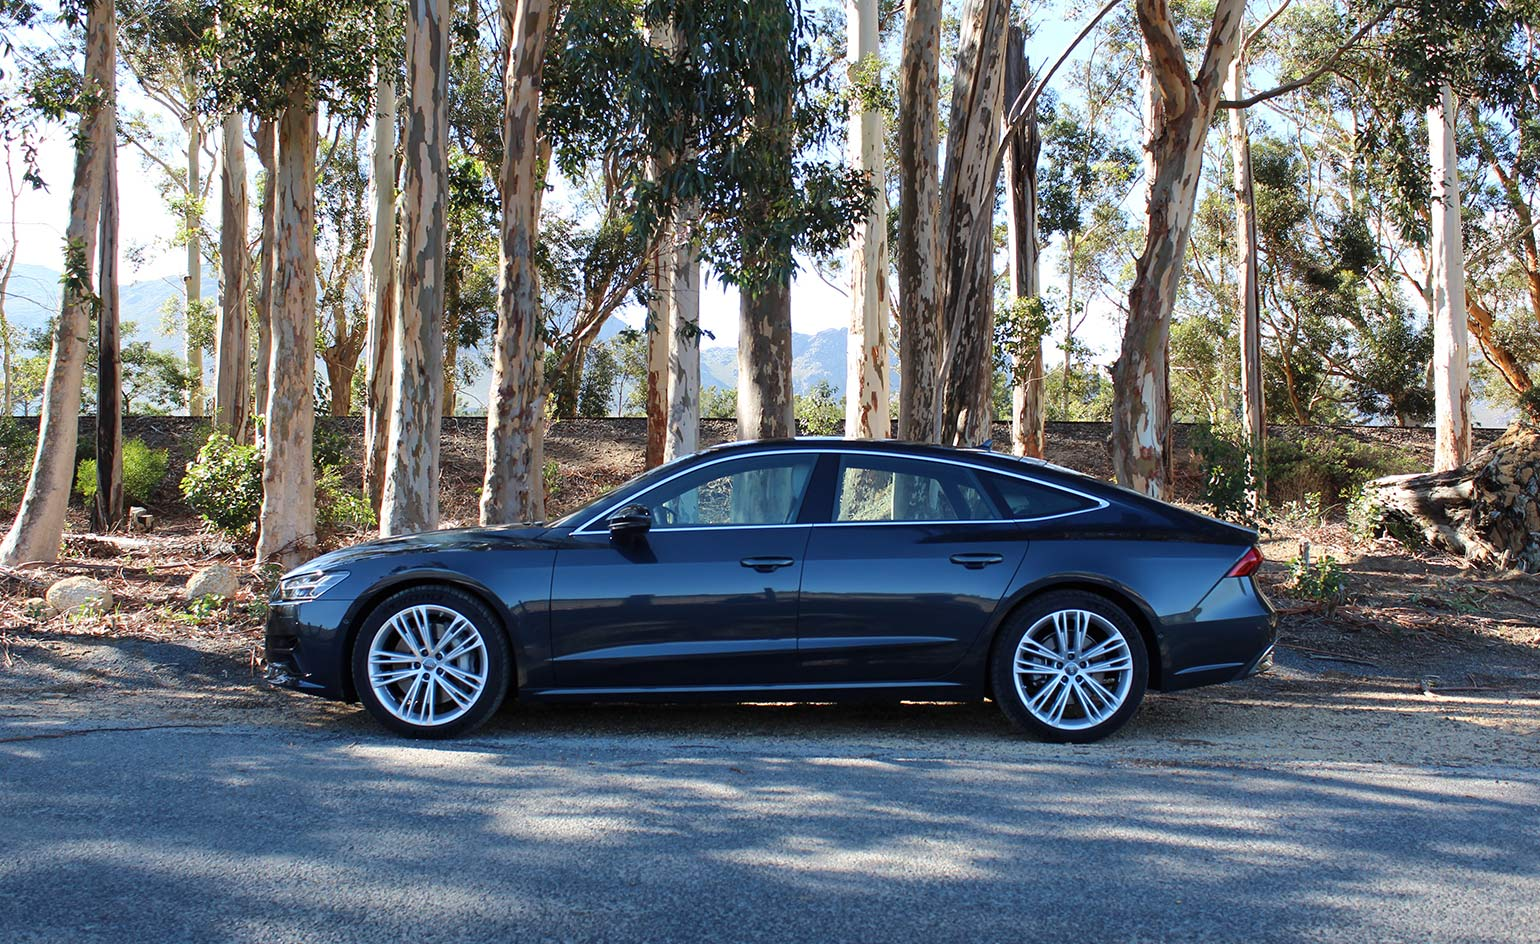 Audi A7 Sportback Review And Test Drive 2018 Wallpaper